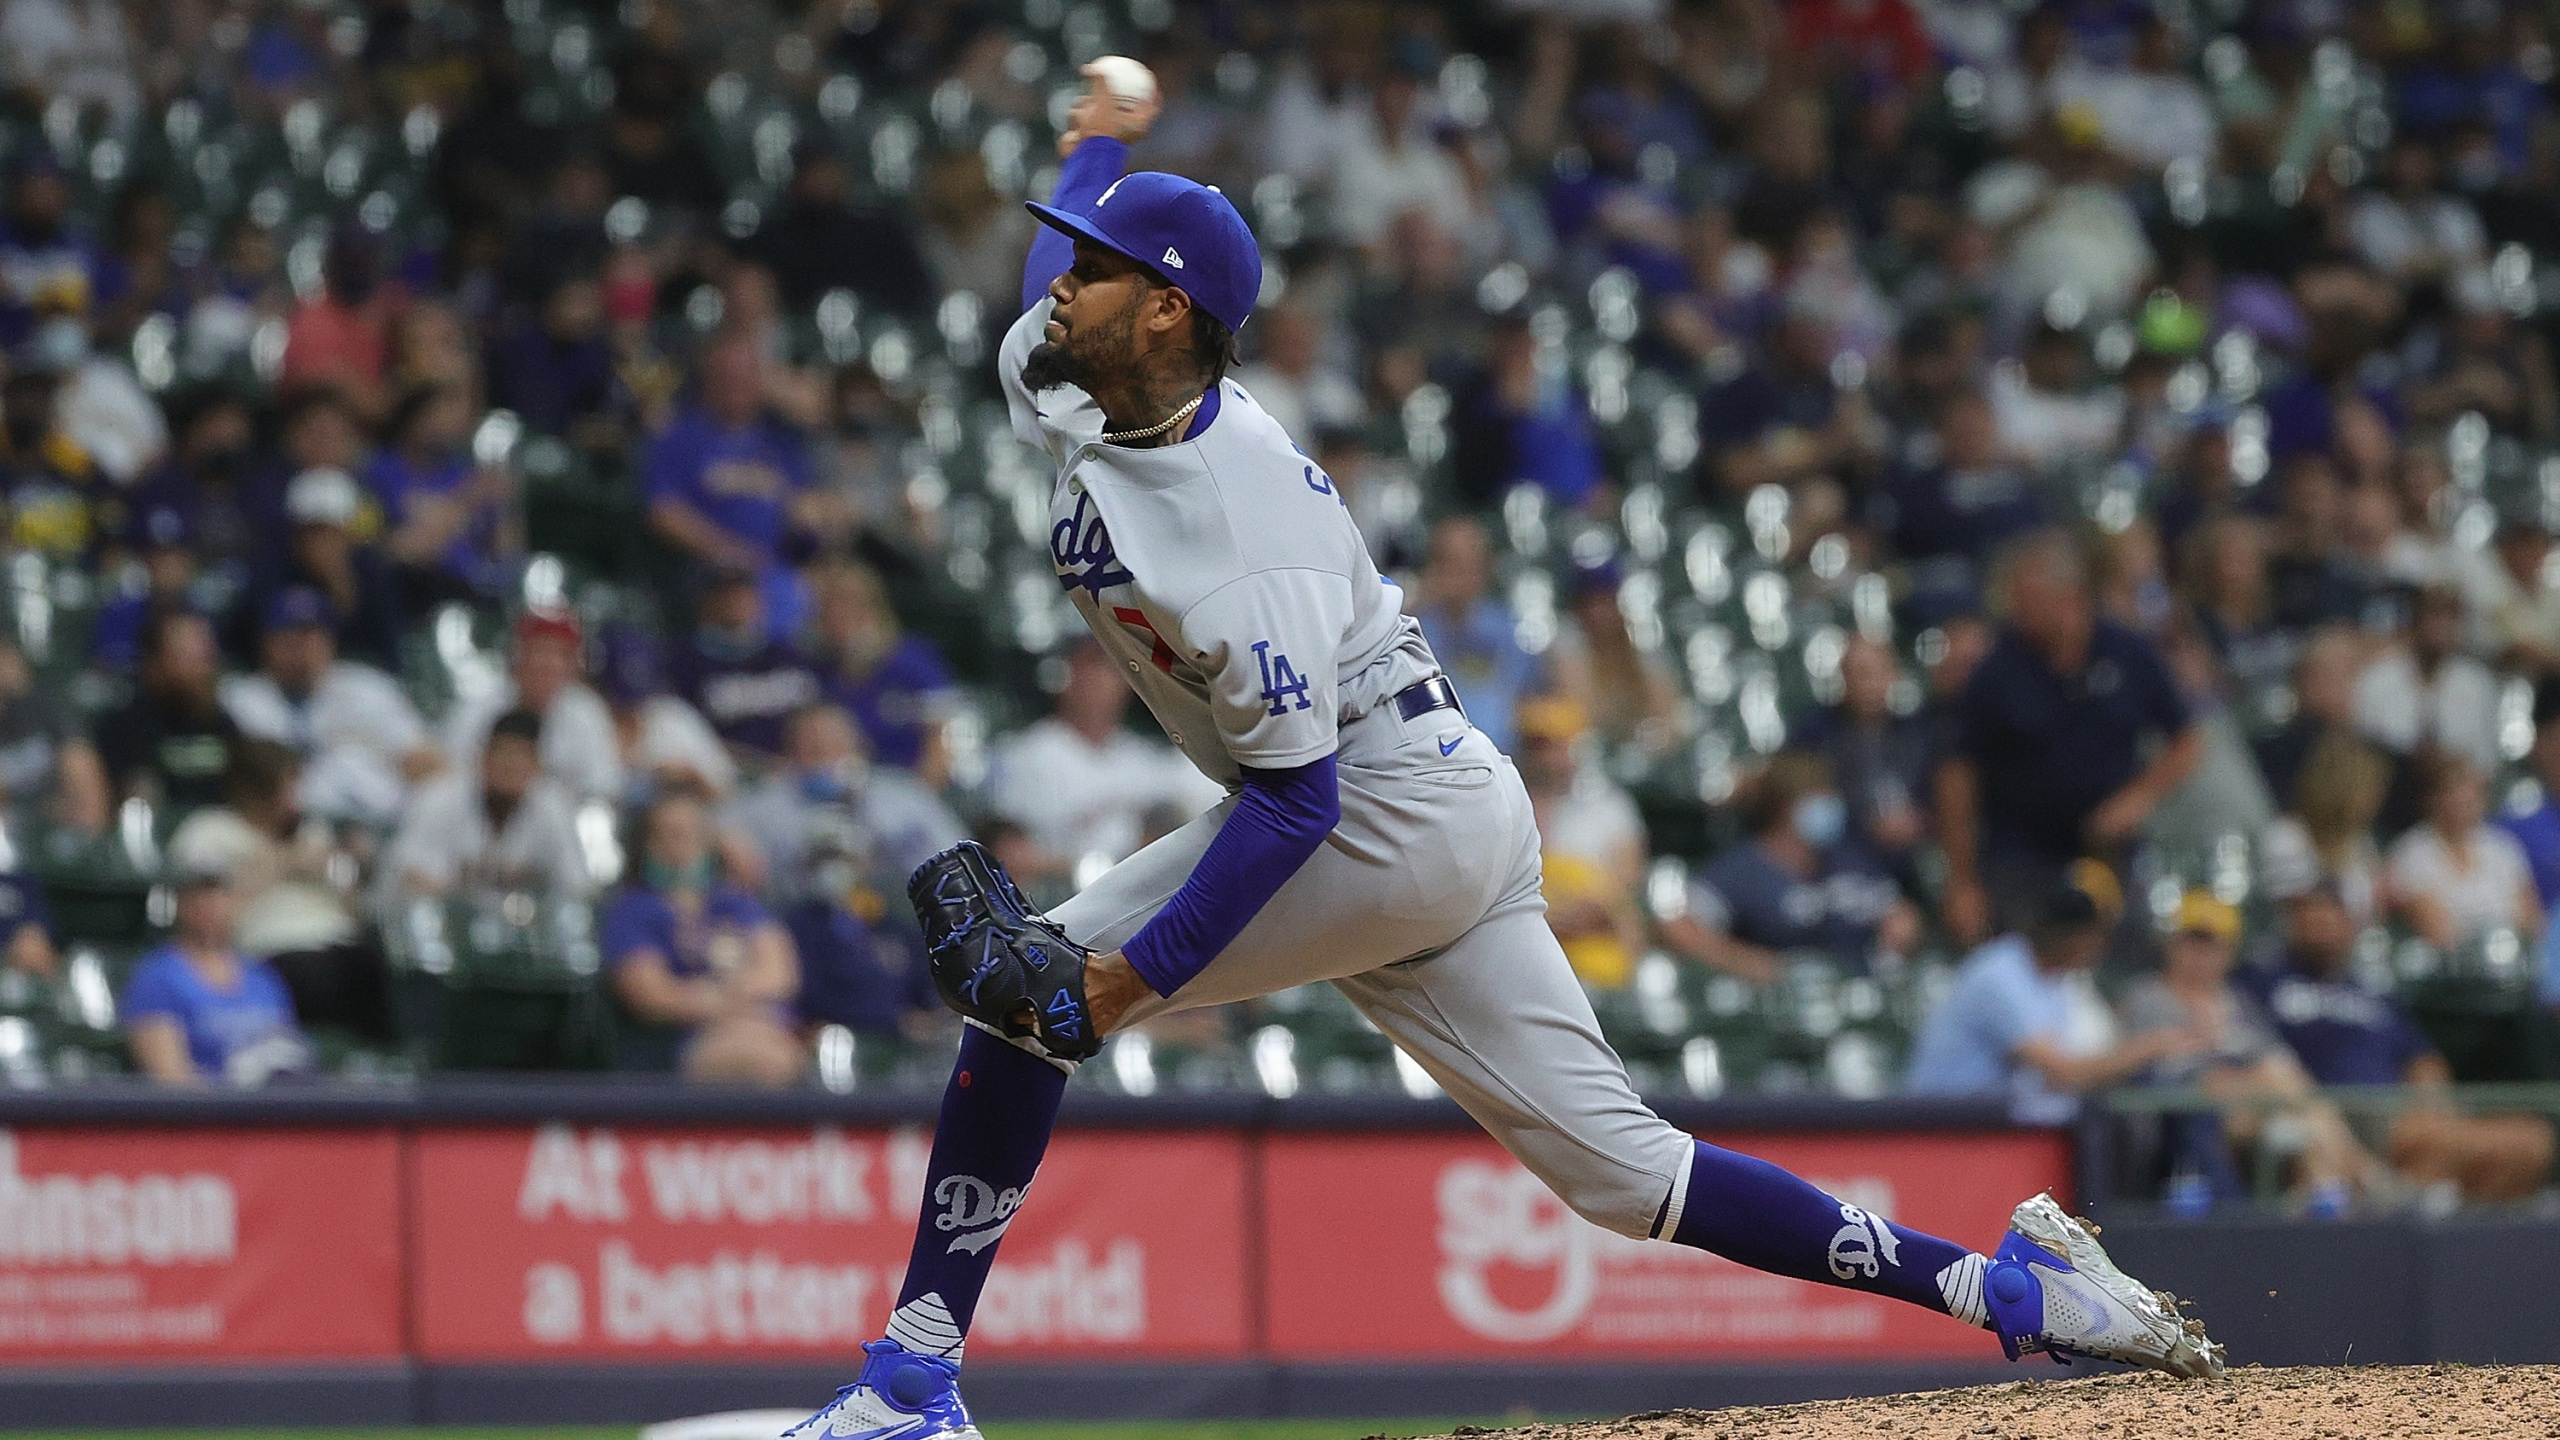 Dennis Santana of the Los Angeles Dodgers throws a pitch during the sixth inning against the Milwaukee Brewers at American Family Field on May 1, 2021 in Milwaukee. (Stacy Revere/Getty Images)